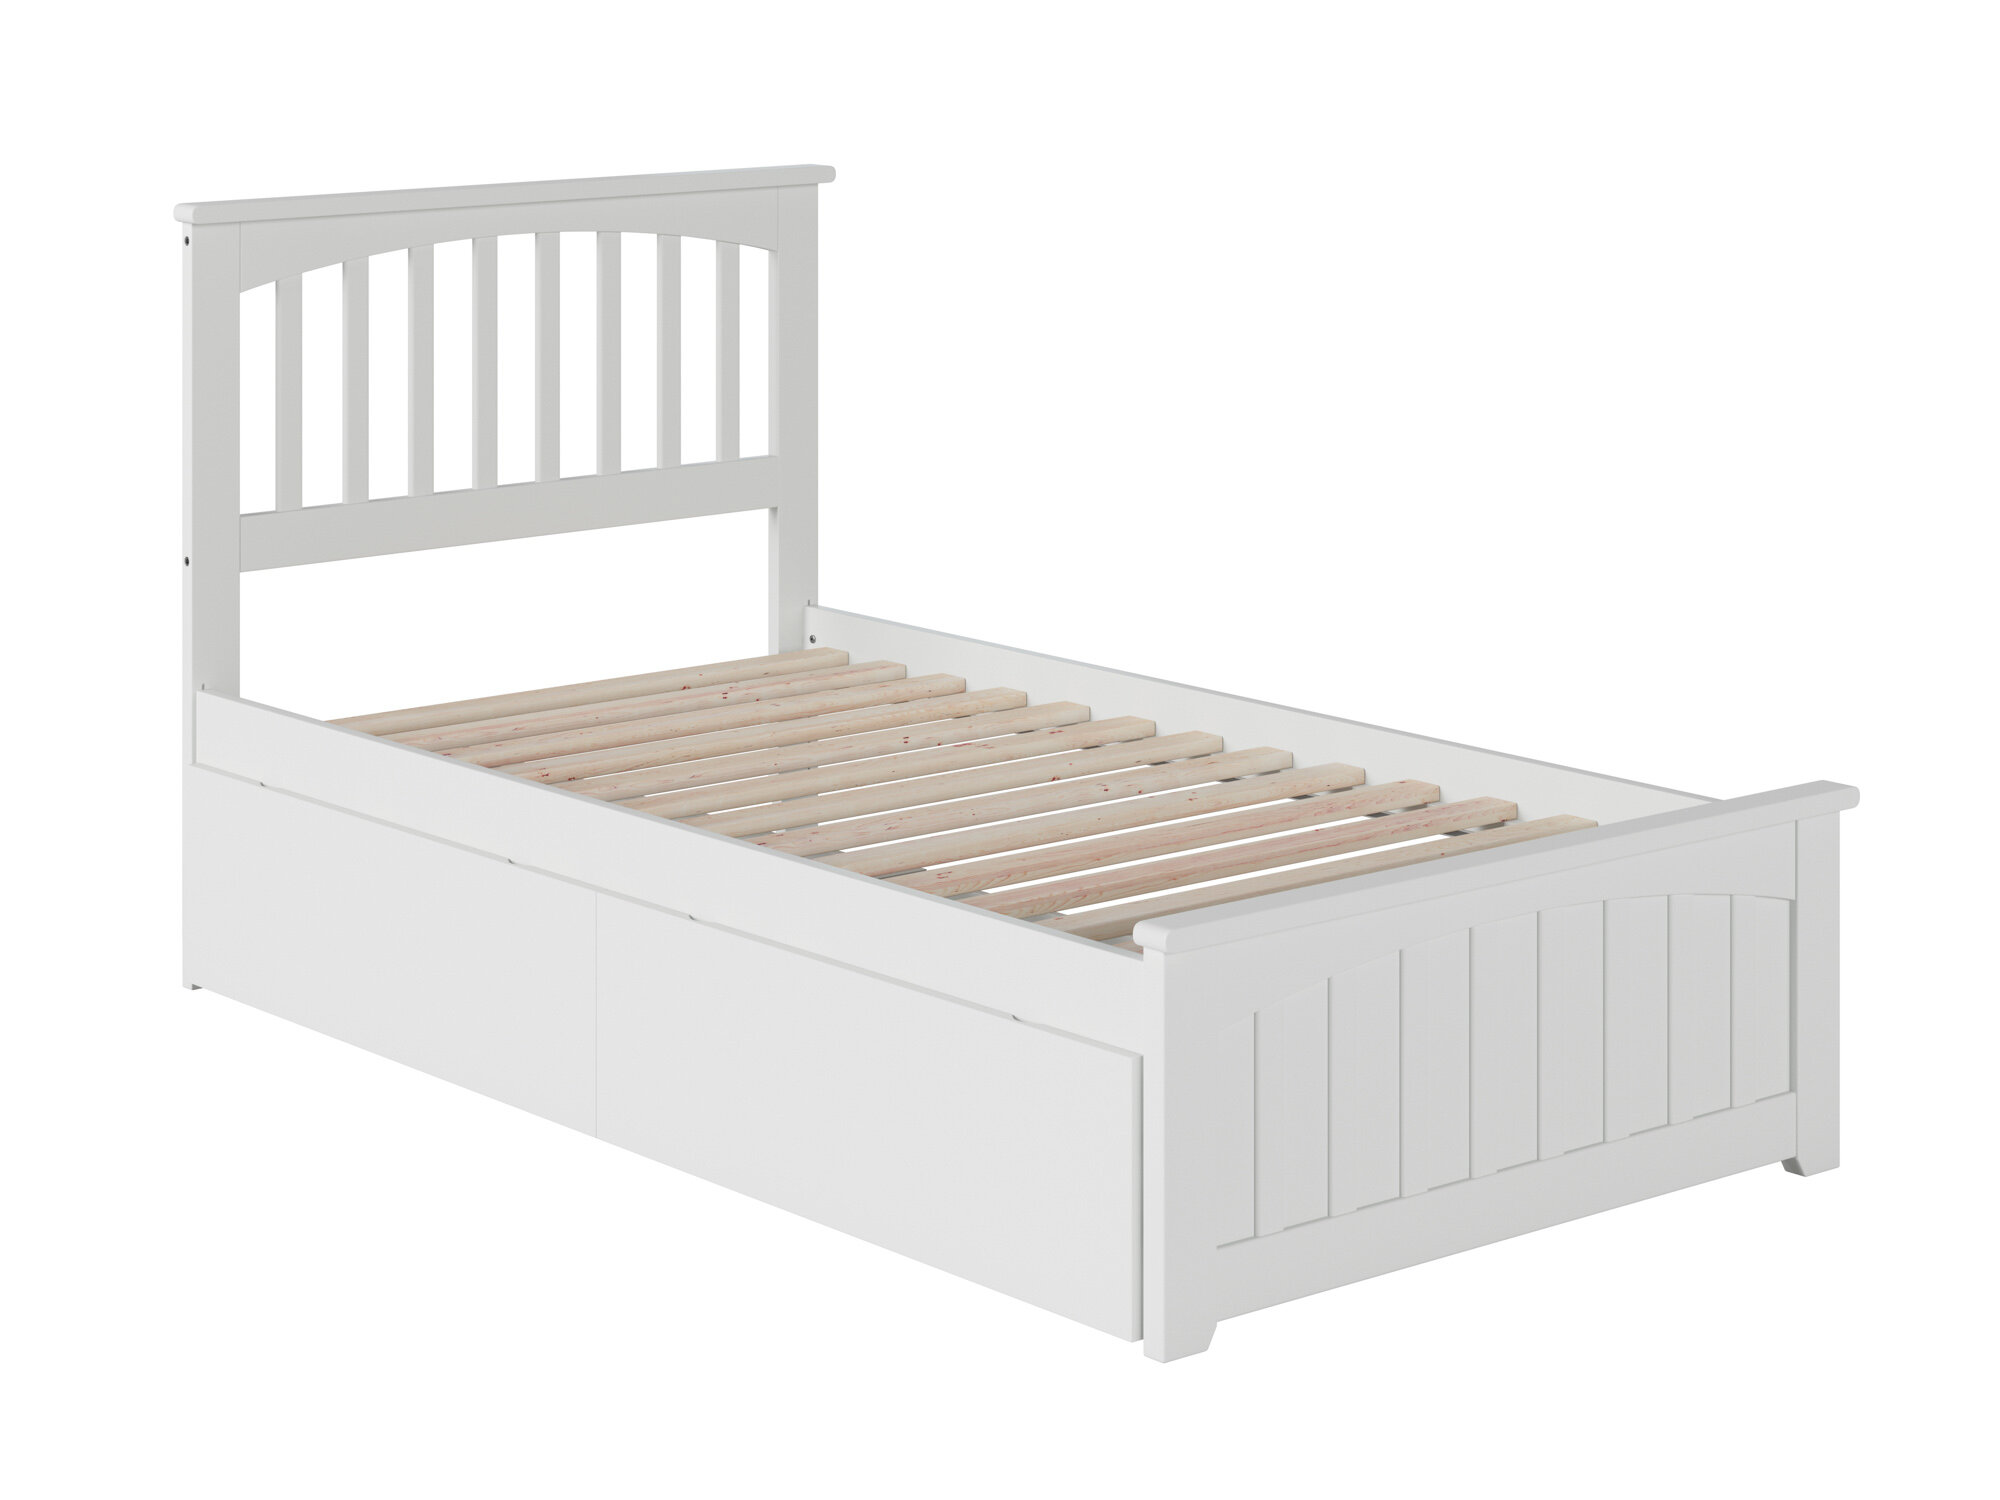 Picture of: Extra Long Xl Twin Beds You Ll Love In 2020 Wayfair